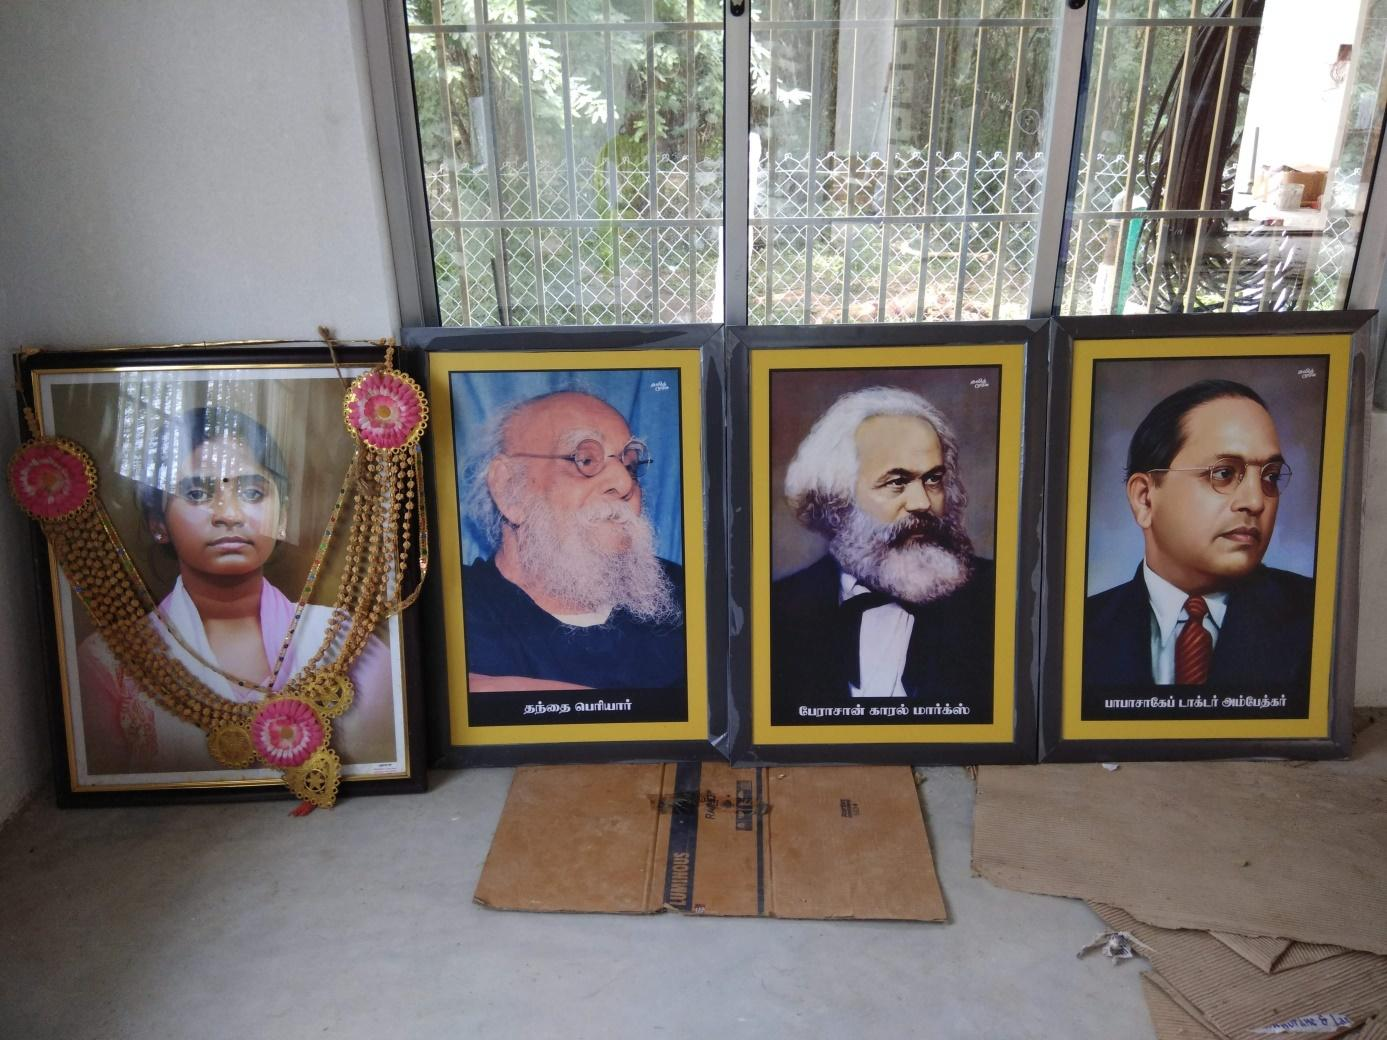 C:\Users\Chandraguru\Pictures\Anitha\August company Anitha's picture is lined up with some of her heroes.jpg